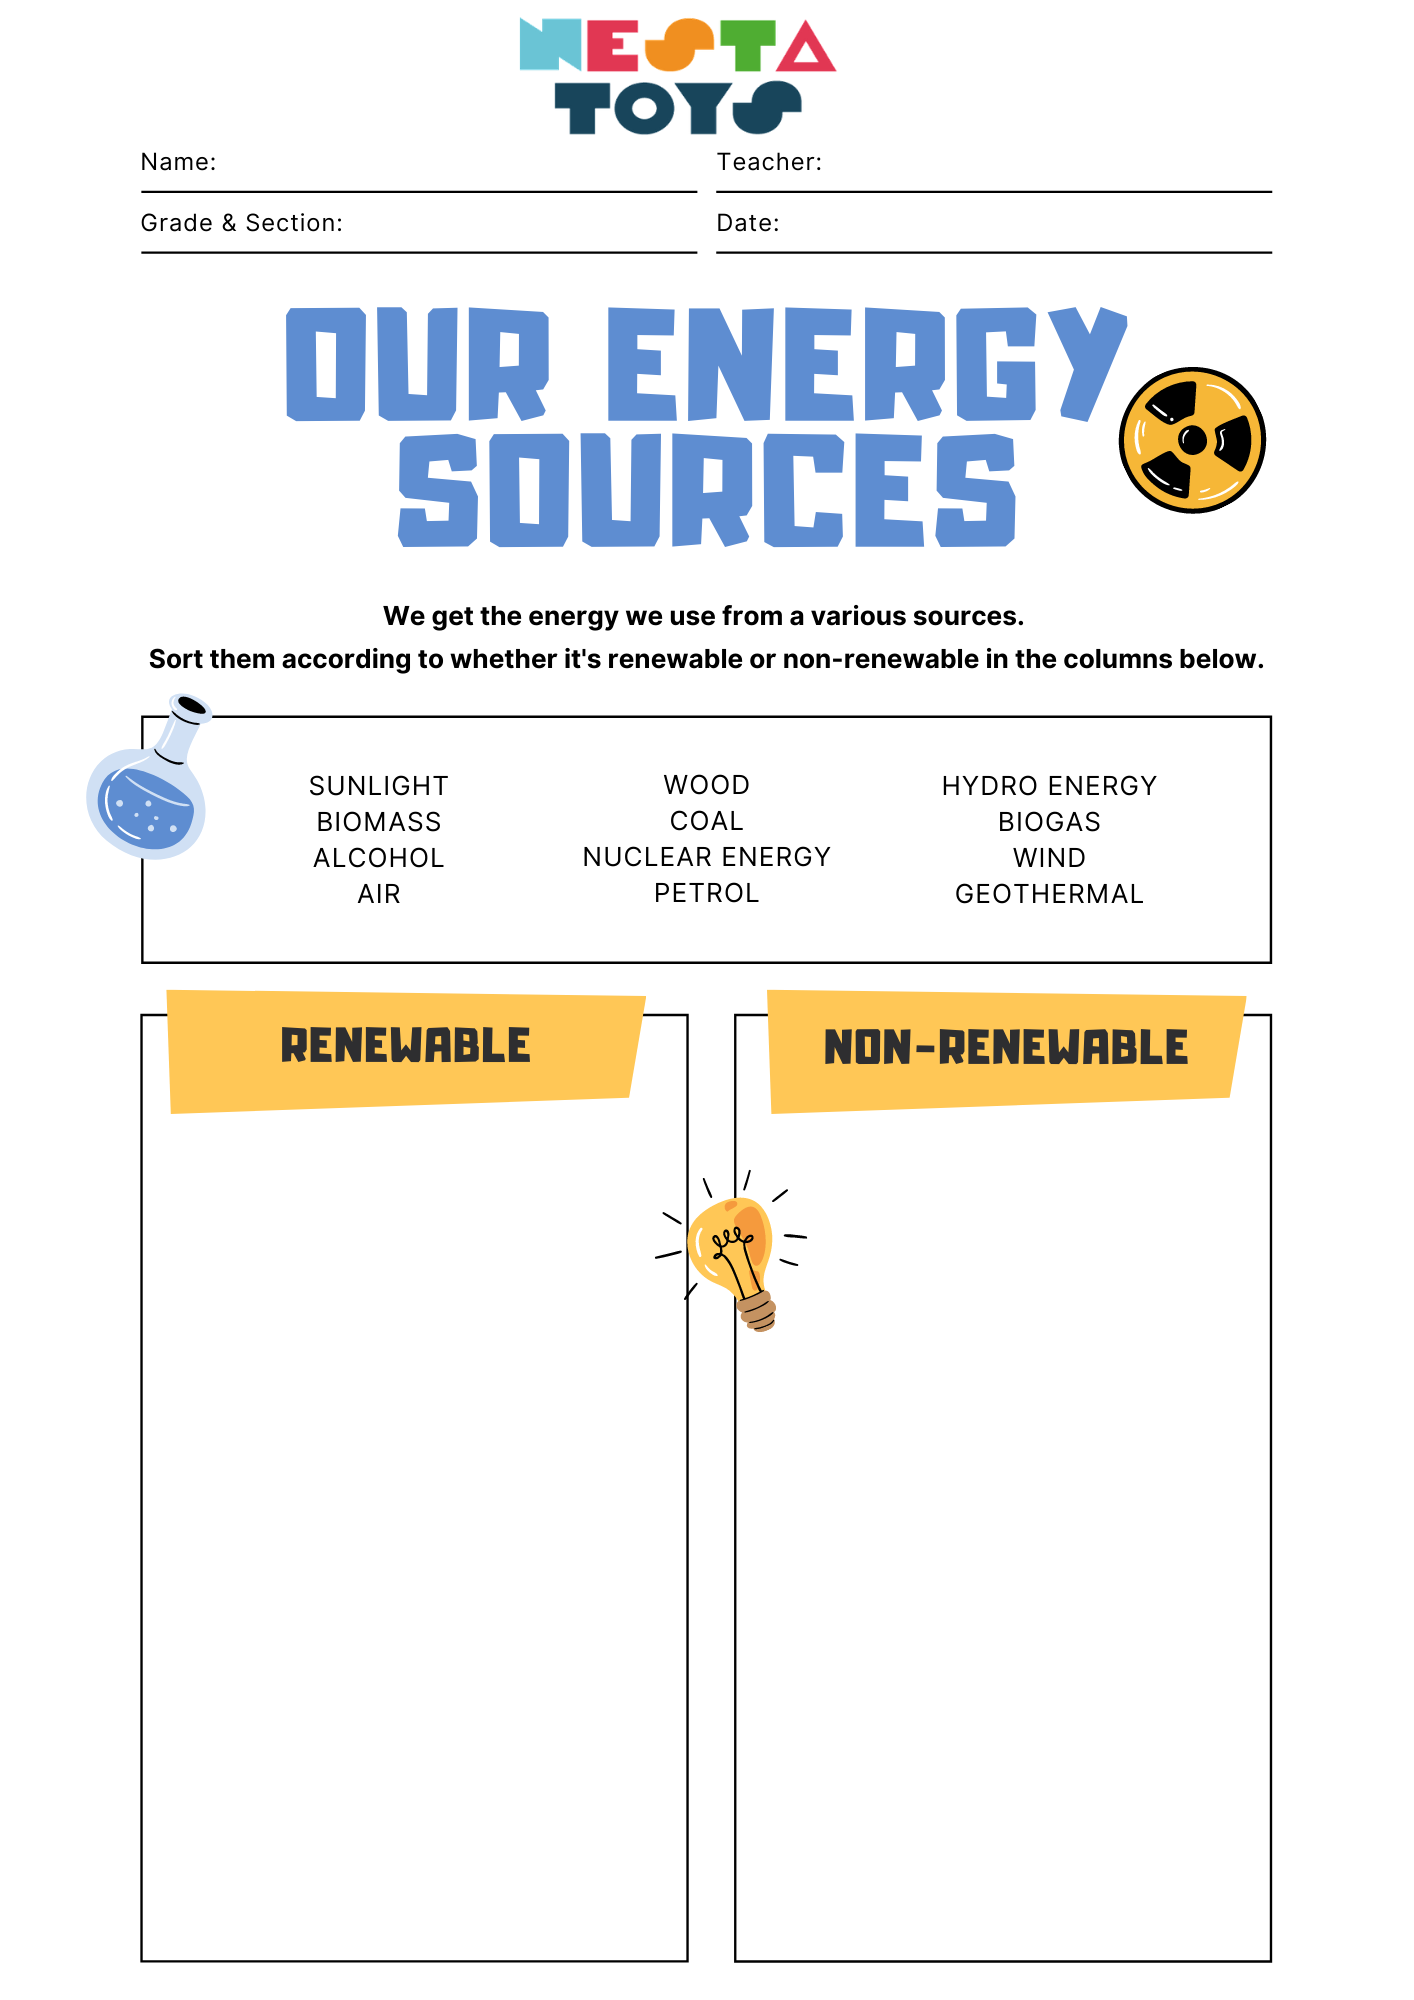 Our energy sources